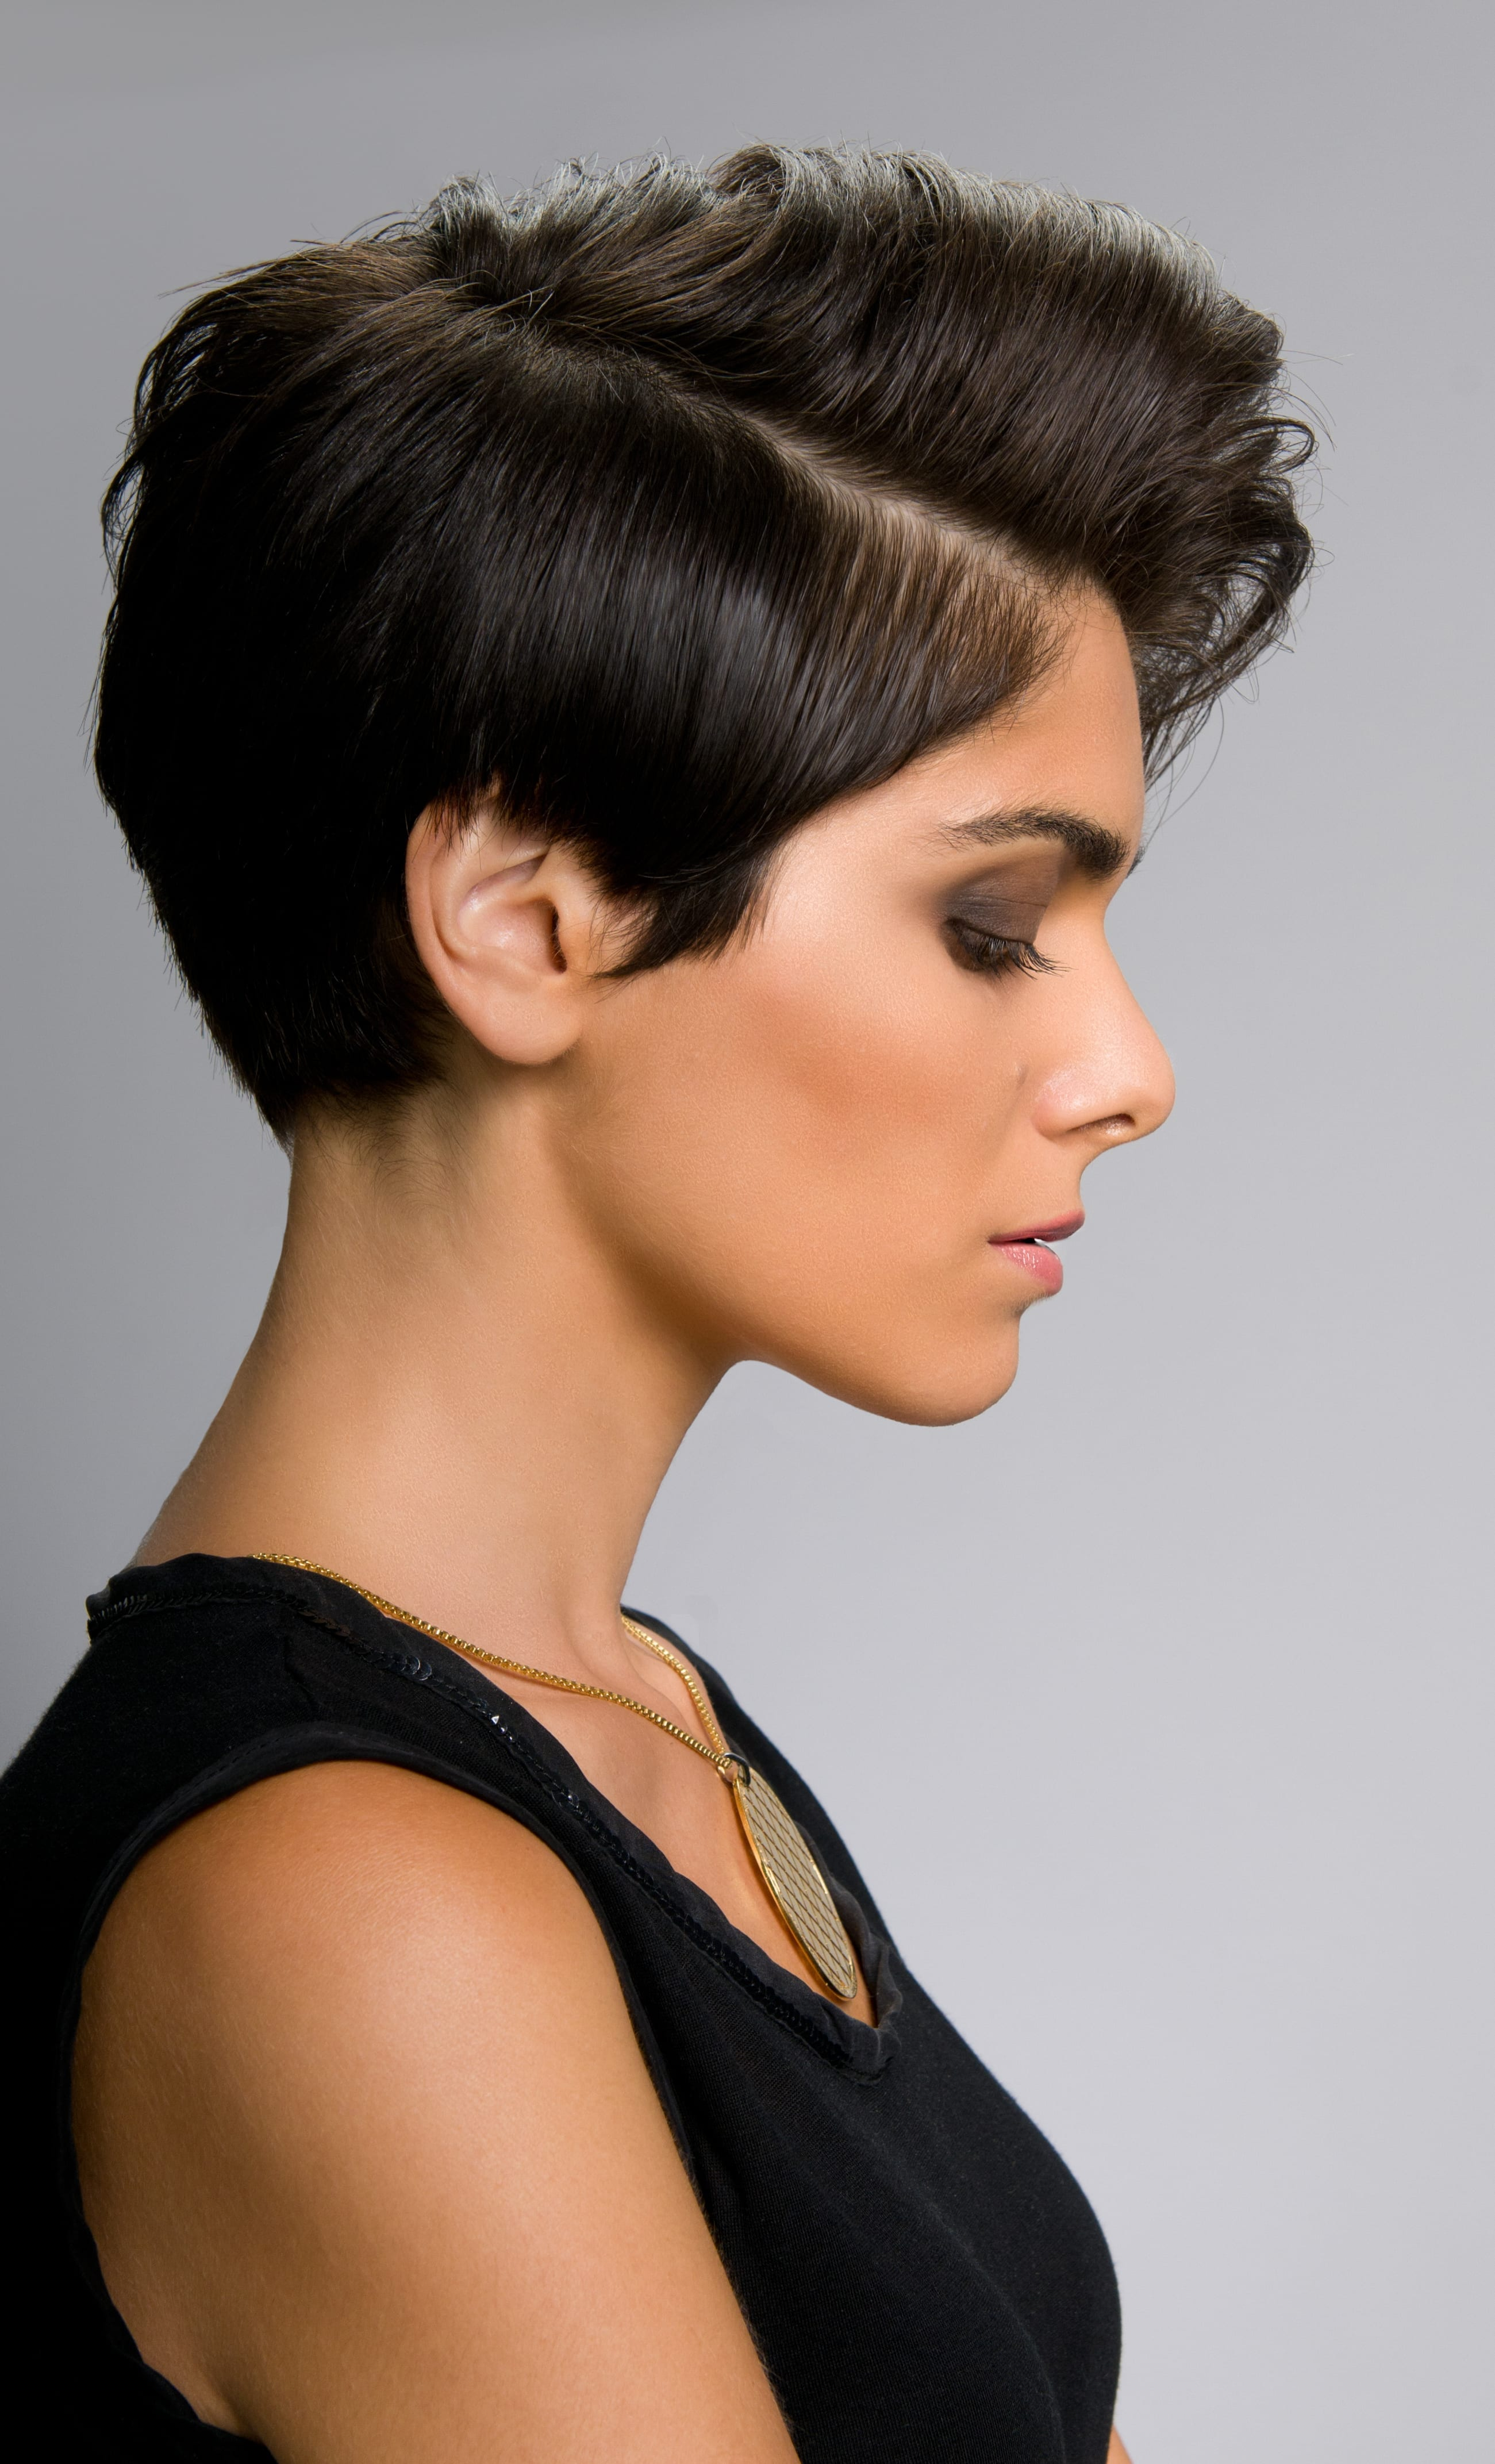 Long Layered Crop with Quiff